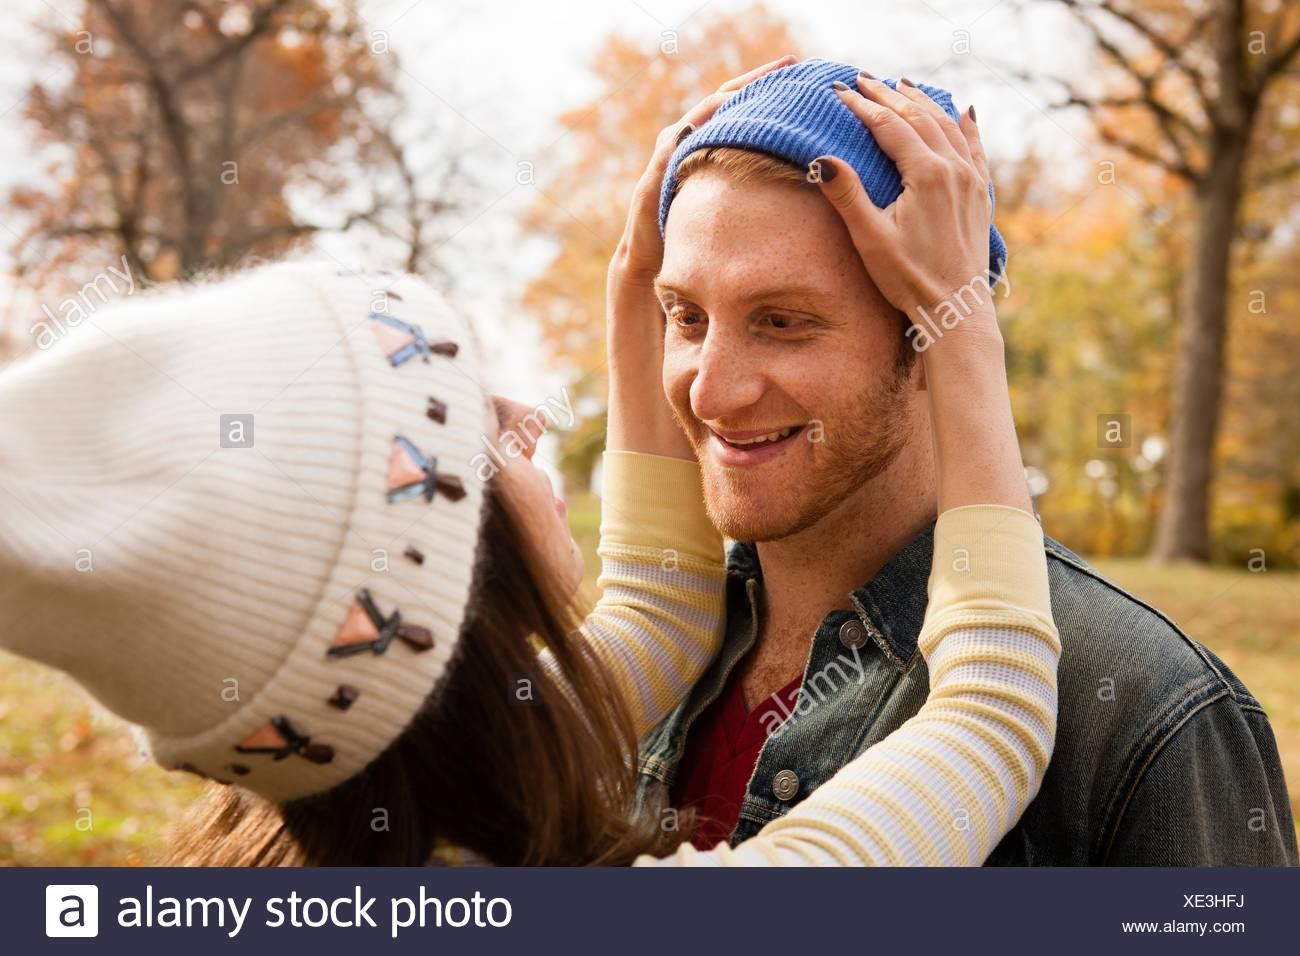 Romantic young woman adjusting boyfriends knit hat in park - Stock Image